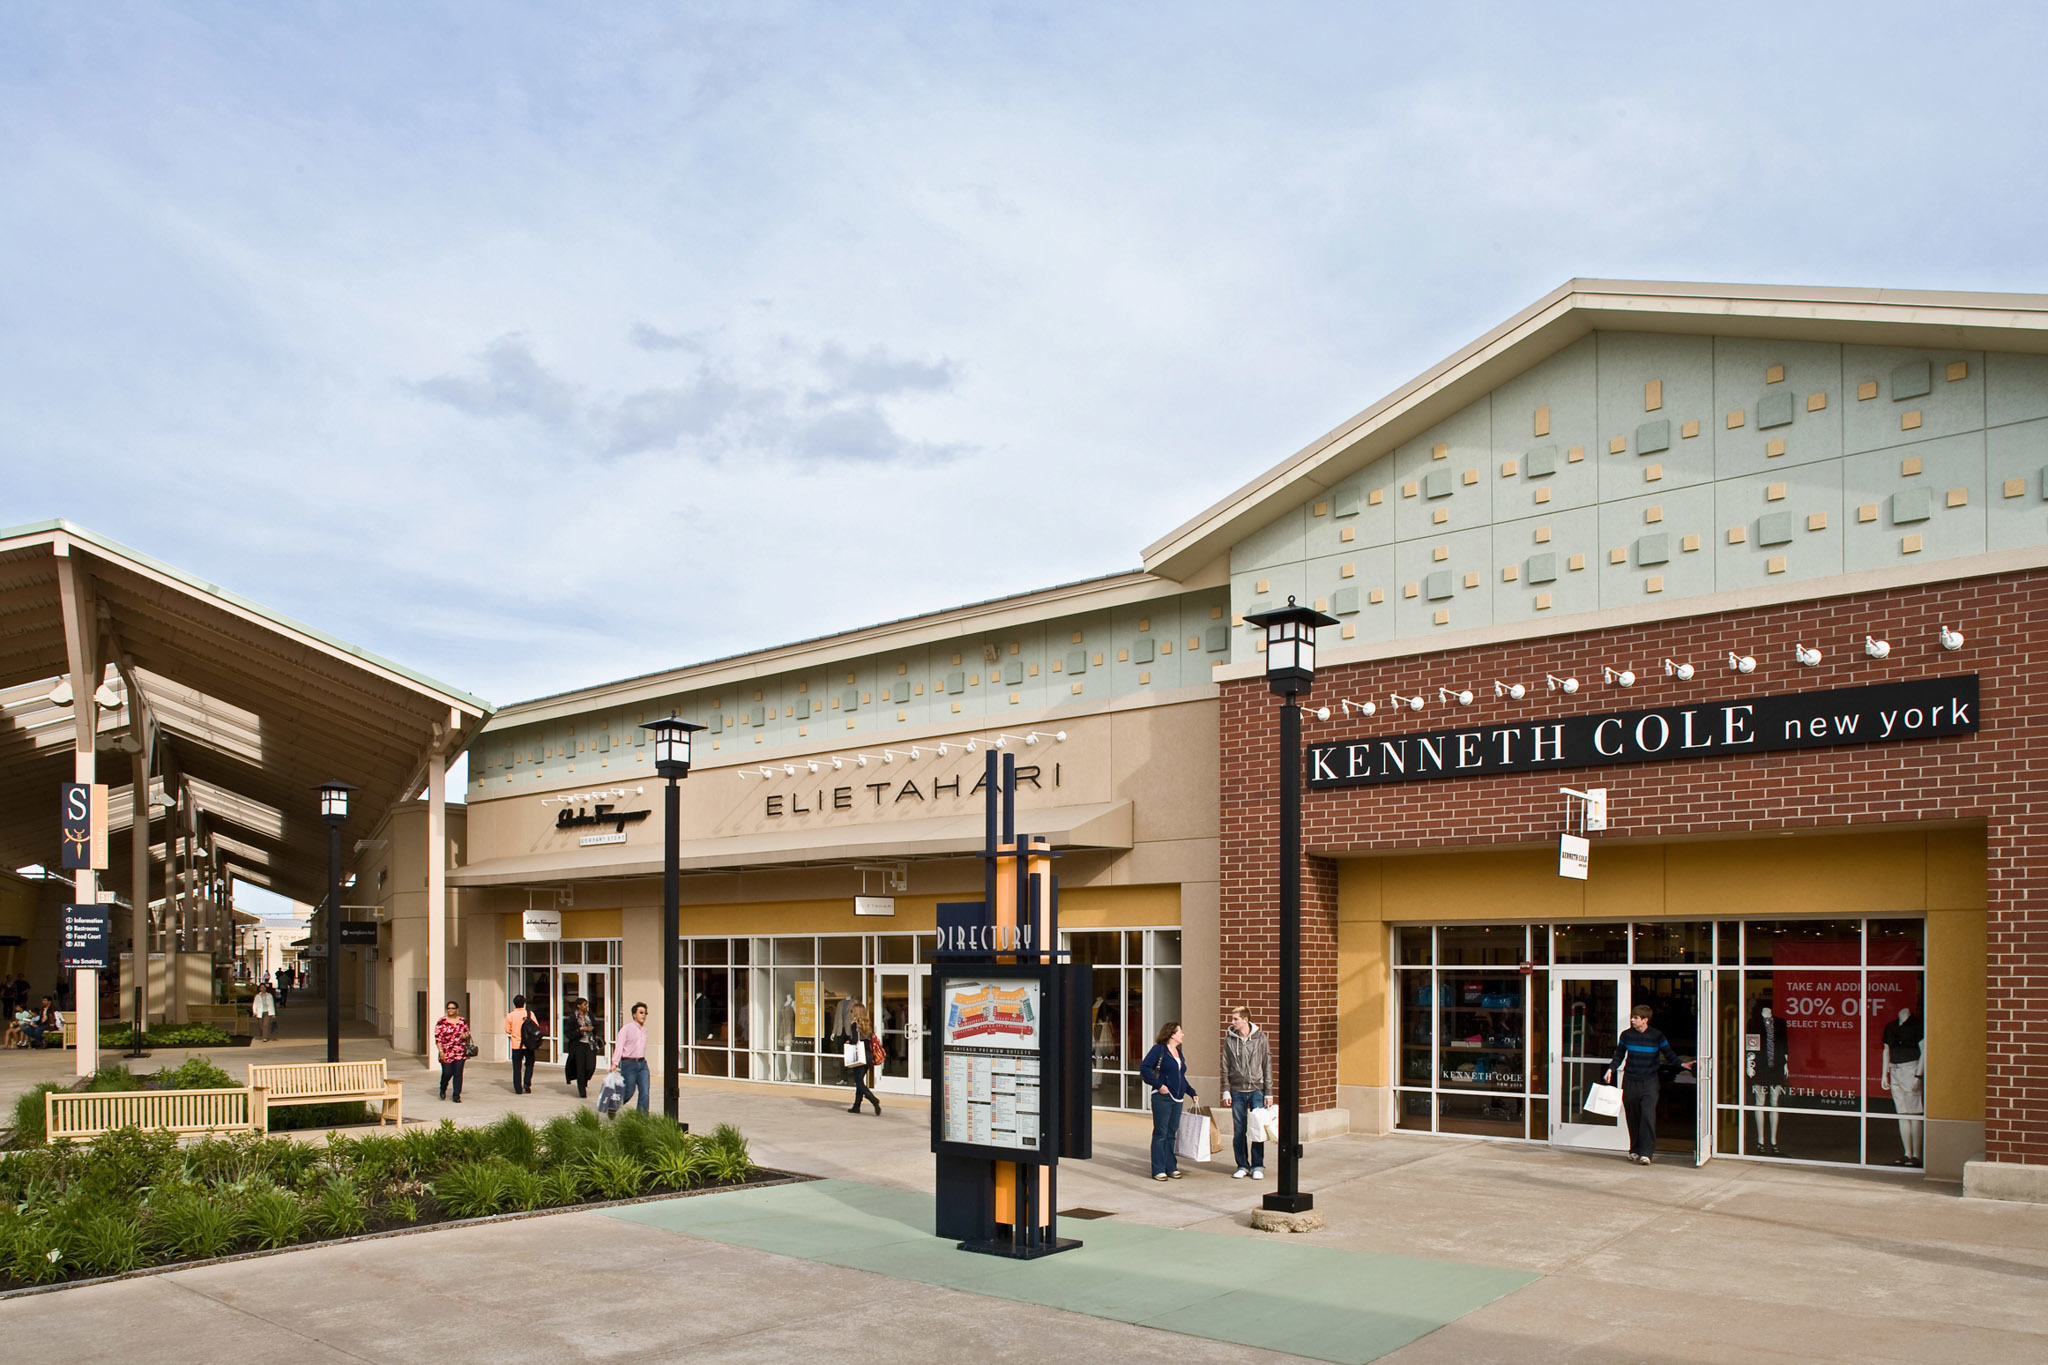 The Furniture Mall Outlet Stores In Chicago For Discount Clothes And Furniture